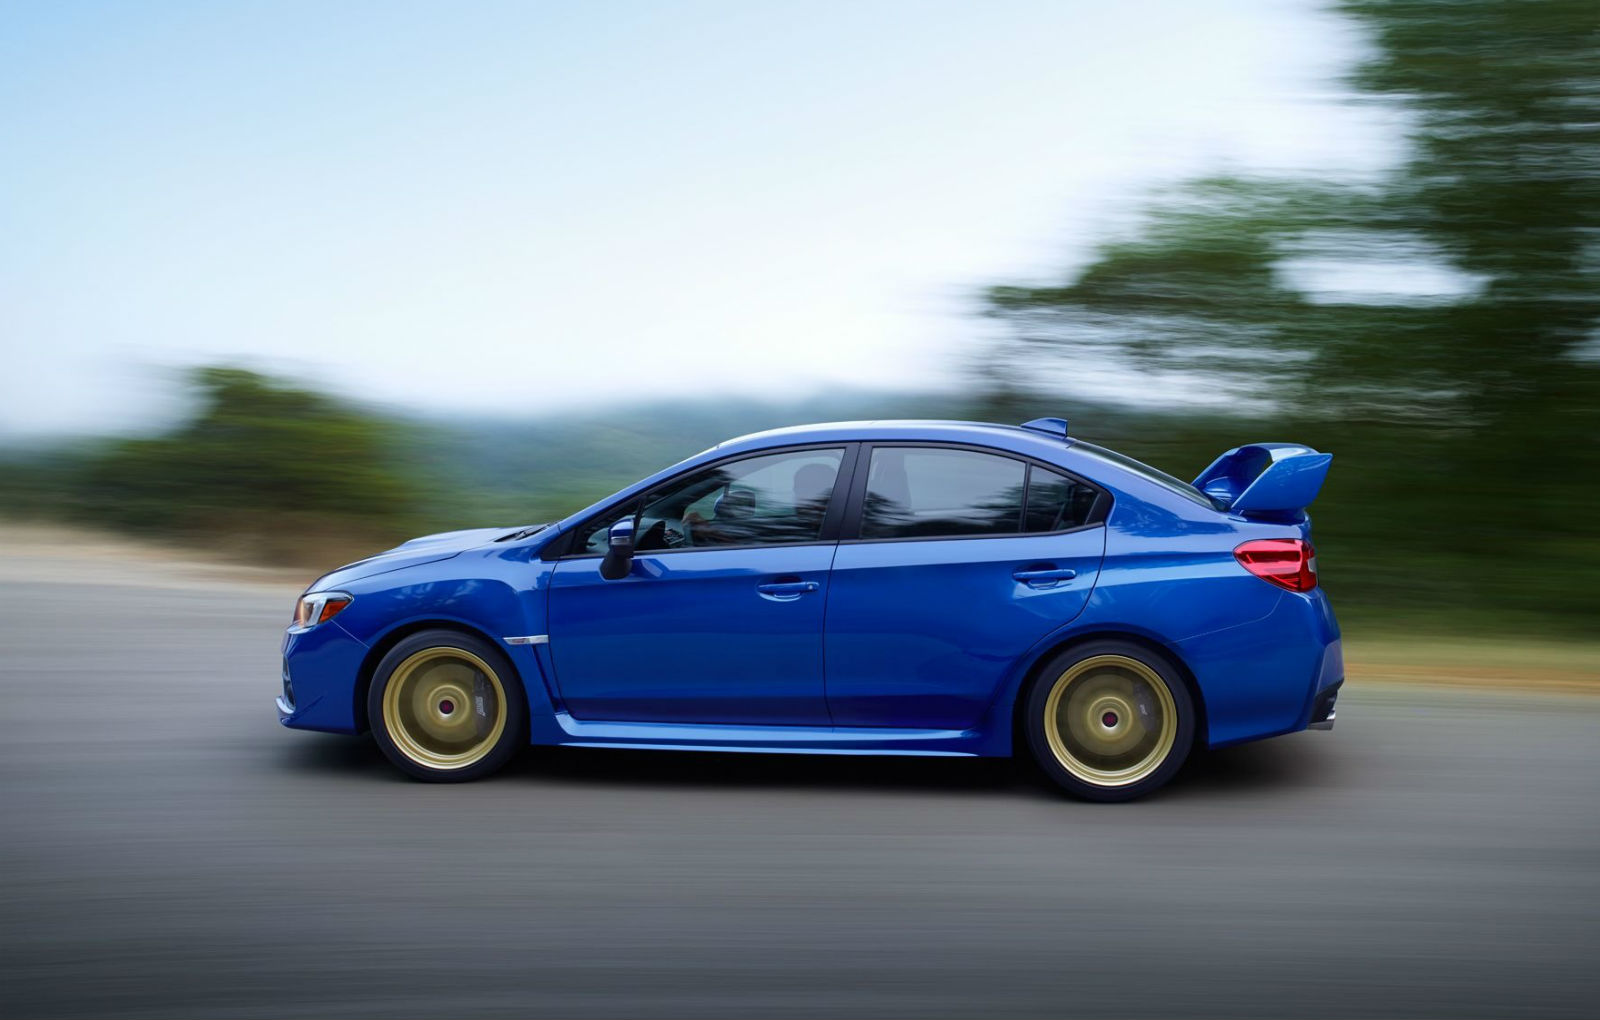 All New 2015 Subaru Wrx Sti 5169 Cars Performance Reviews And Blue With White Rims